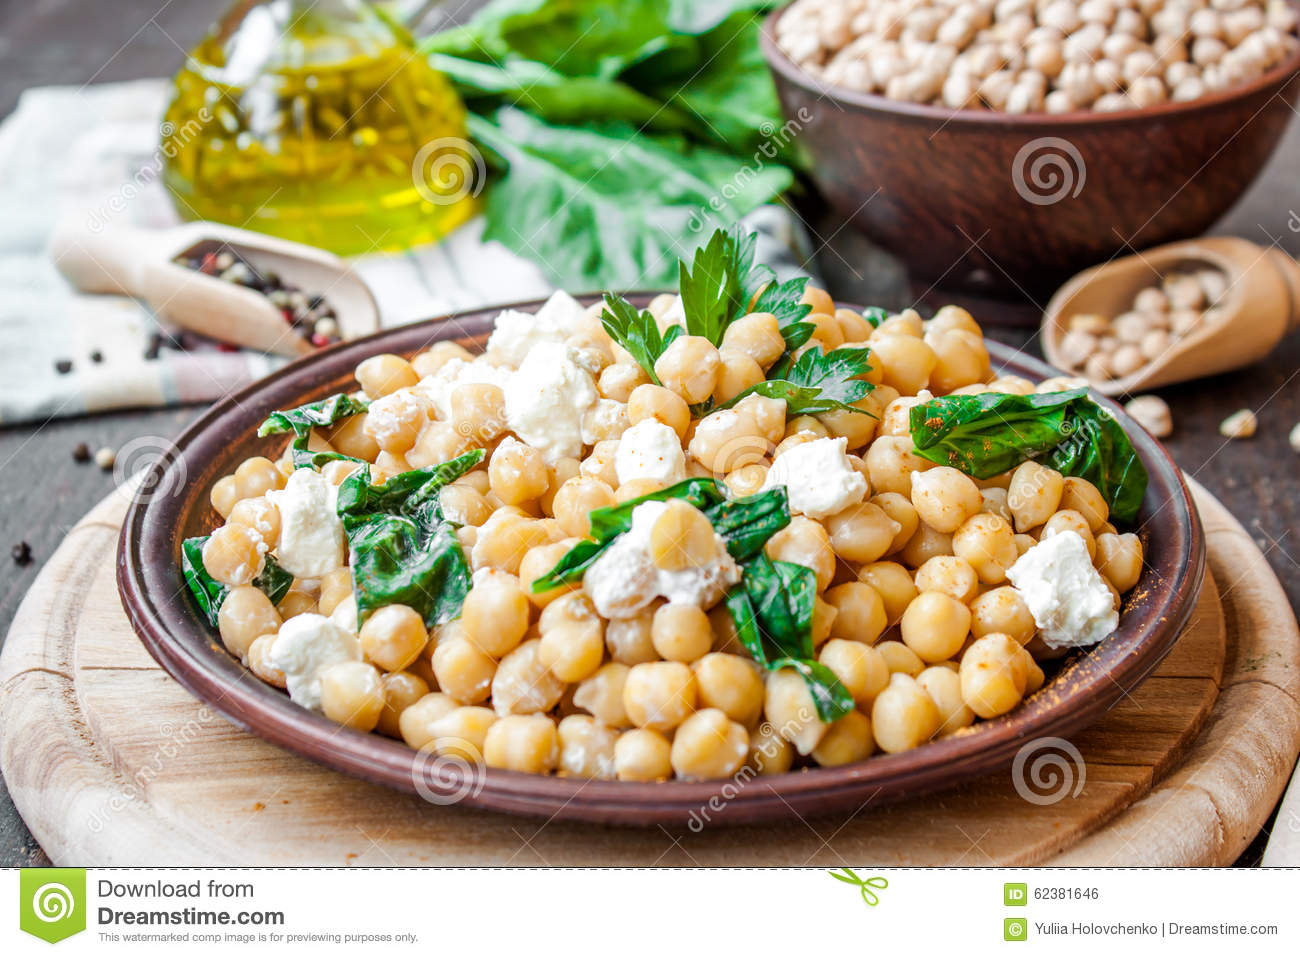 Chickpeas With Spinach And Feta Stock Photo - Image: 62381646